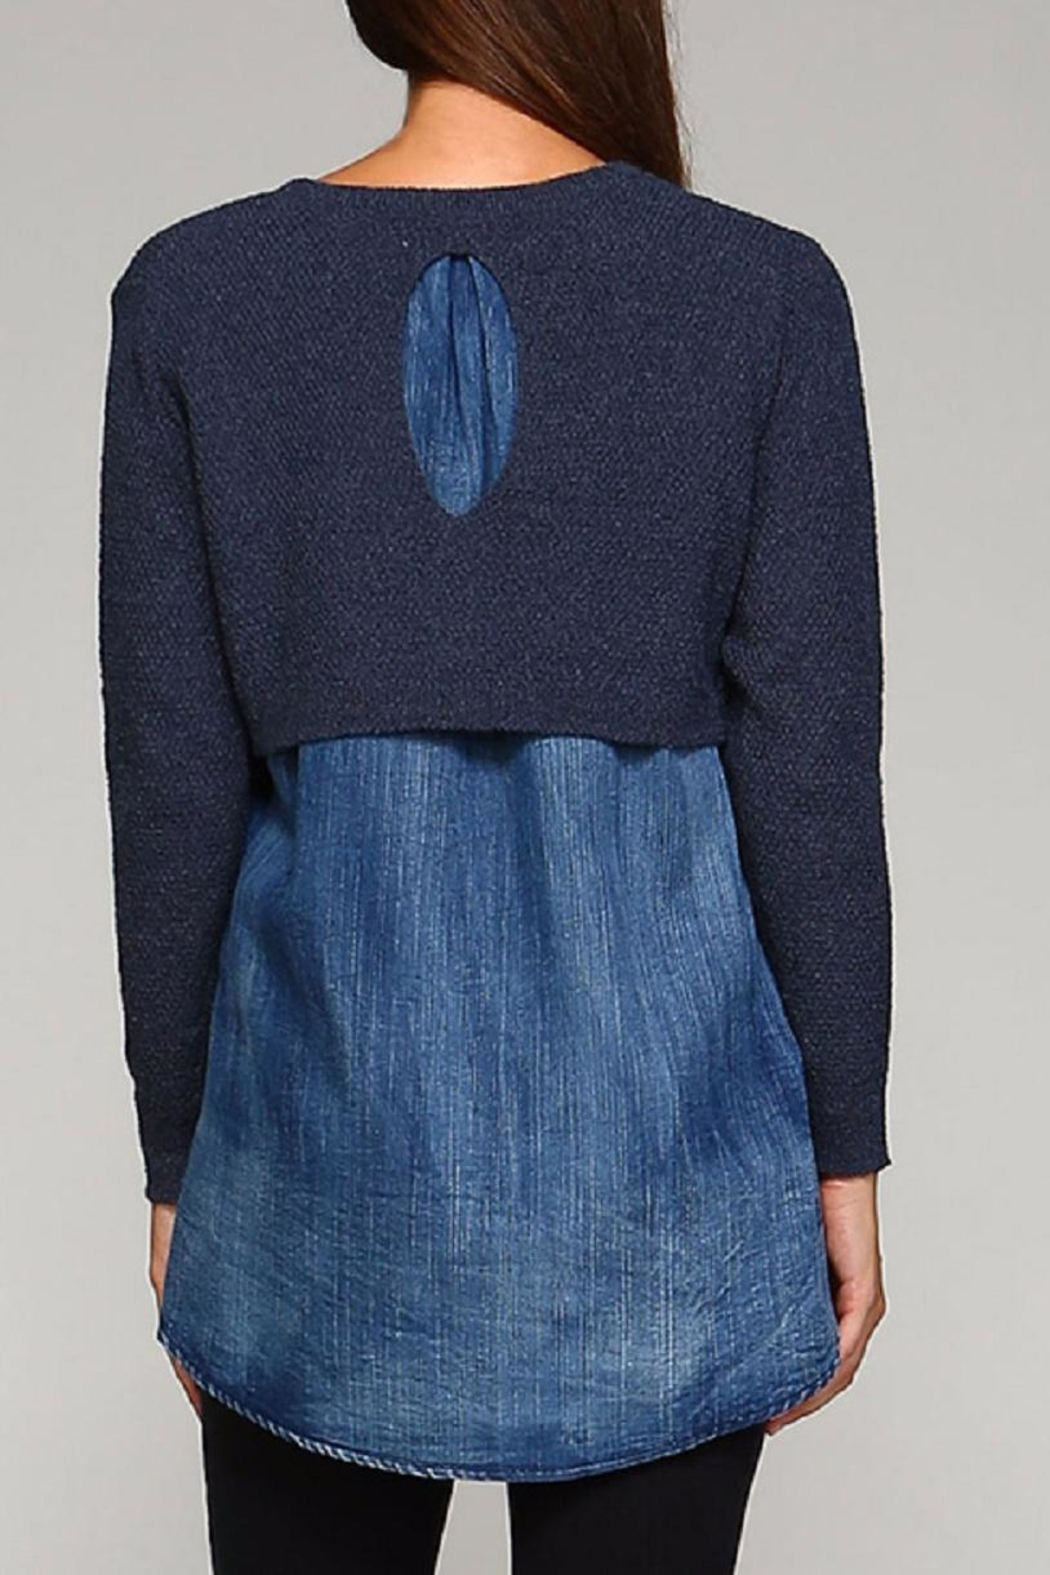 Selfie Couture Denim Blue Sweater - Side Cropped Image